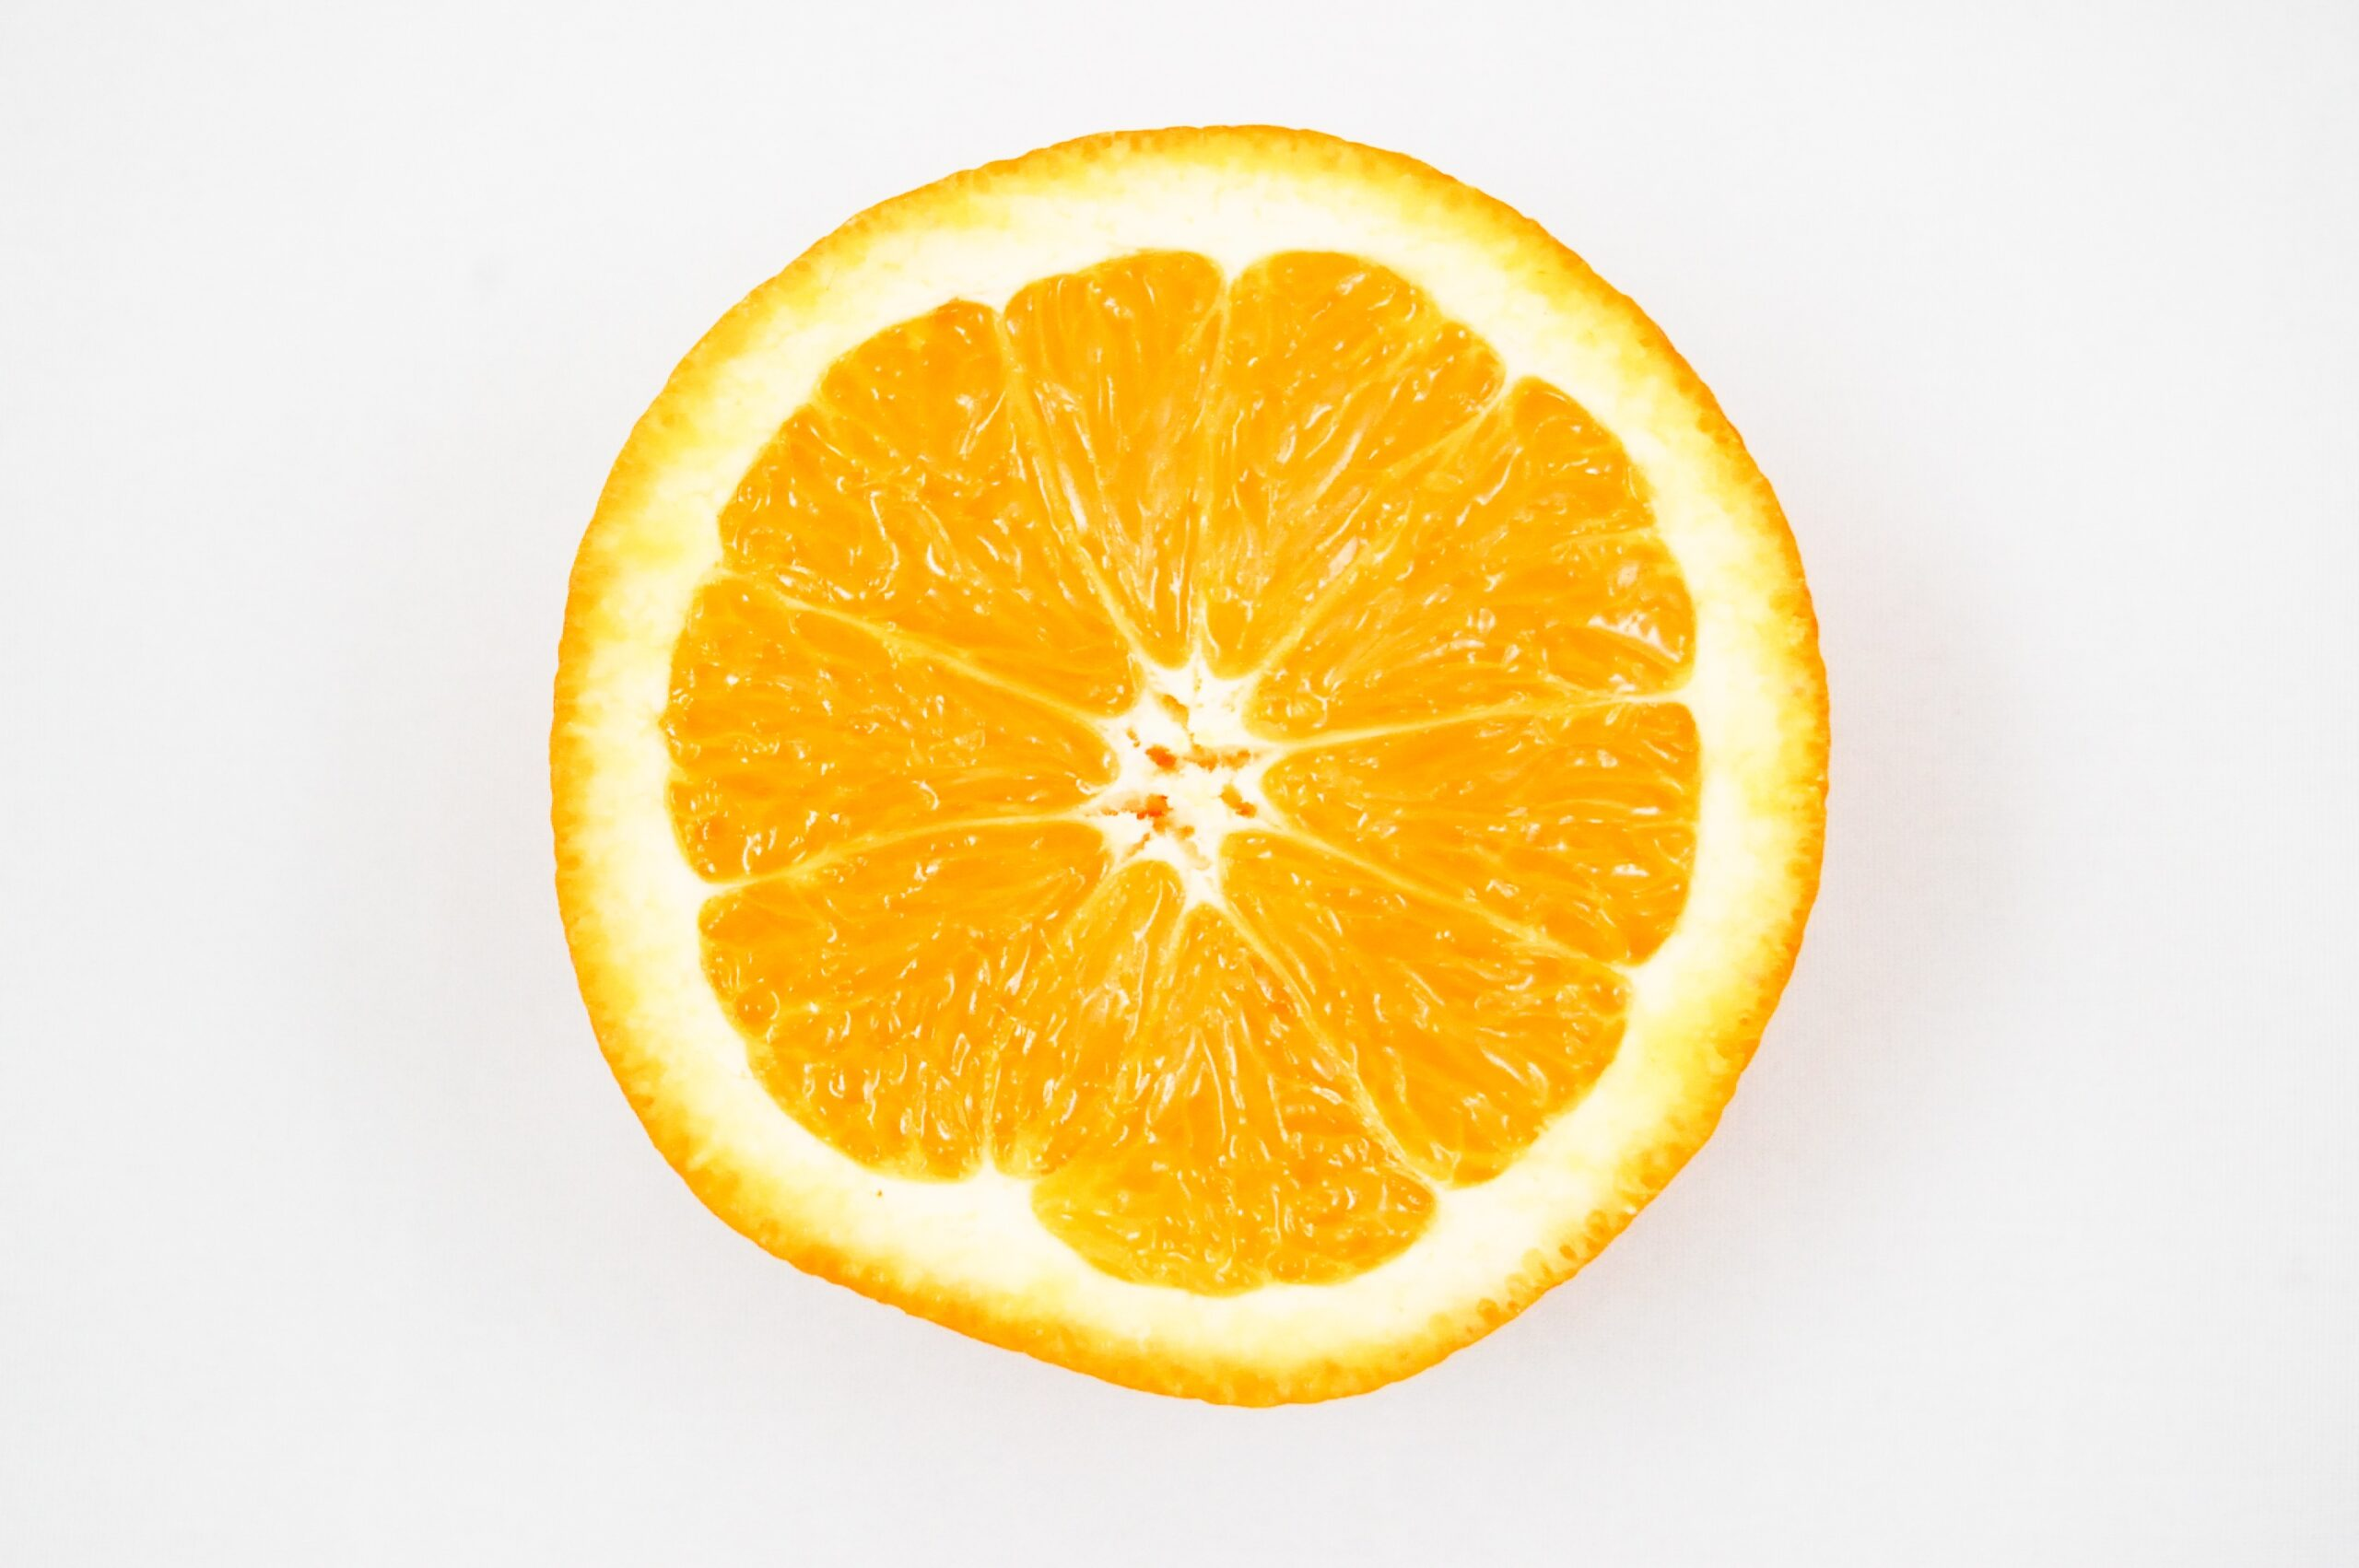 What does vitamin C actually do?